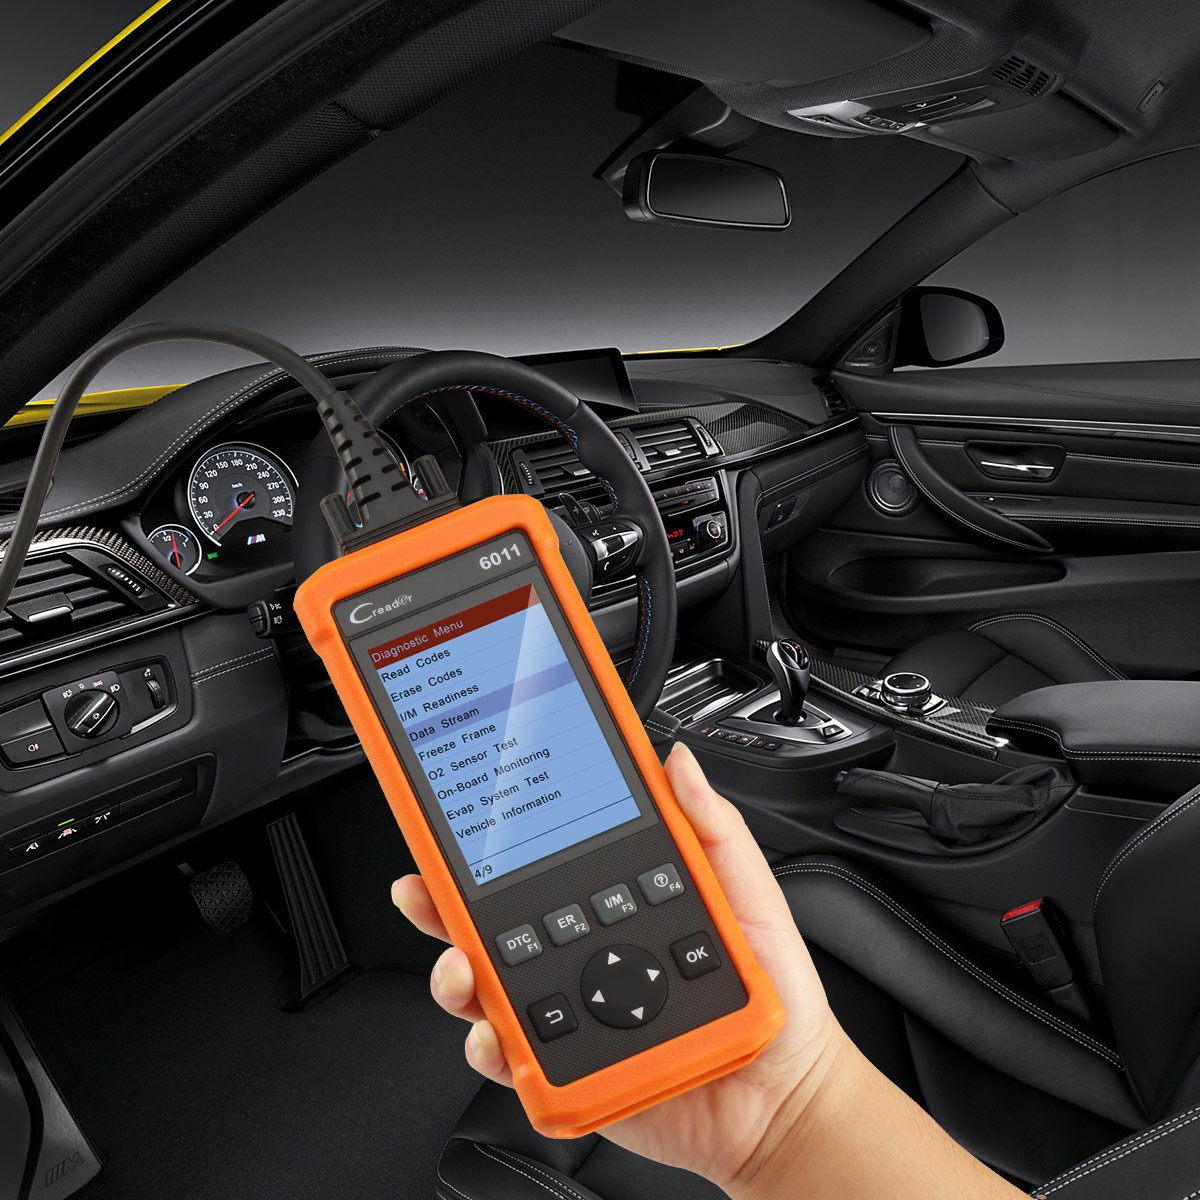 Launch CReader 6011 OBD2 EOBD Scan Tool Professional Auto ABS SRS Diagnostic Scan Tool Universal OBD2 Scanner Car Engine Fault Code Reader for OBDII Standard Vehicle by Launch (Image #6)